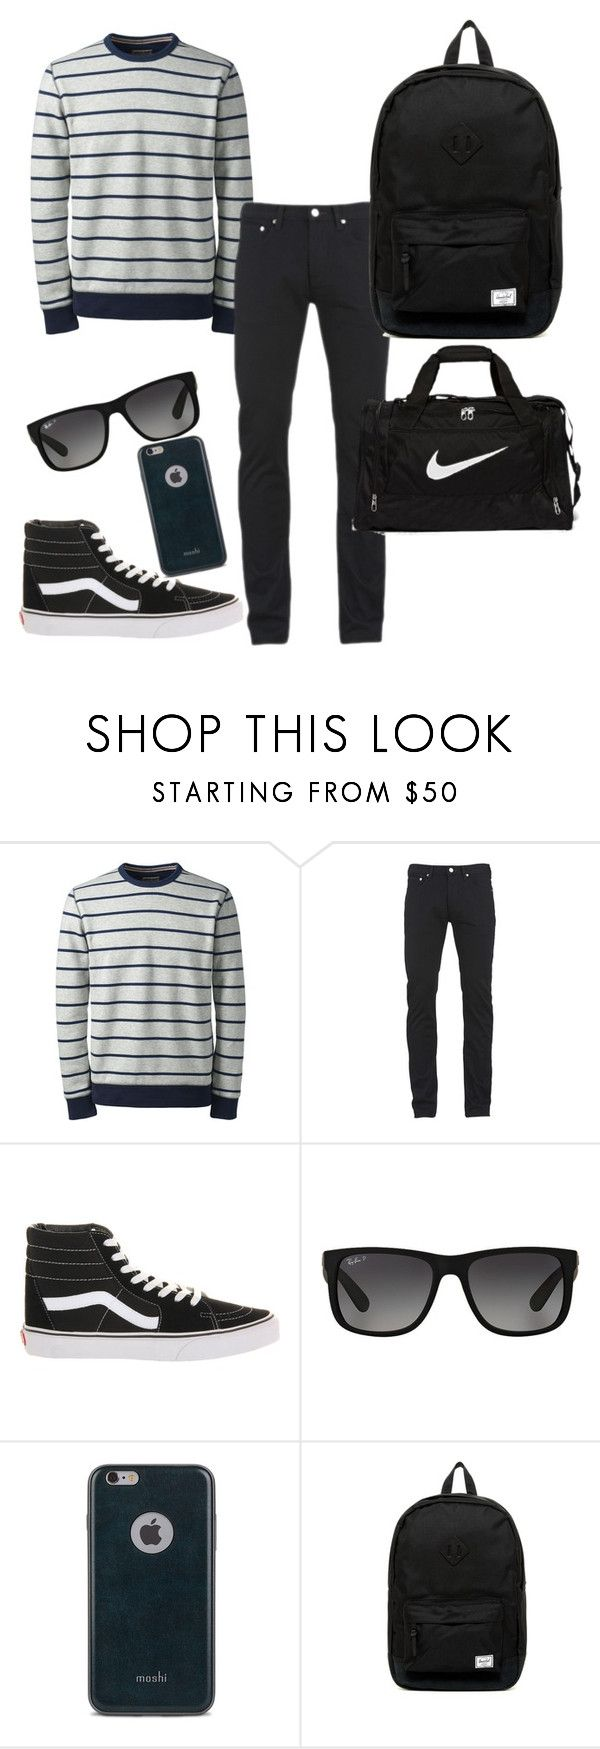 Aarons outfit by californiahesperia on Polyvore featuring Lands End, Paul Smith, Vans, Ray-Ban, Moshi, Herschel Supply Co., NIKE, mens fashion and menswear